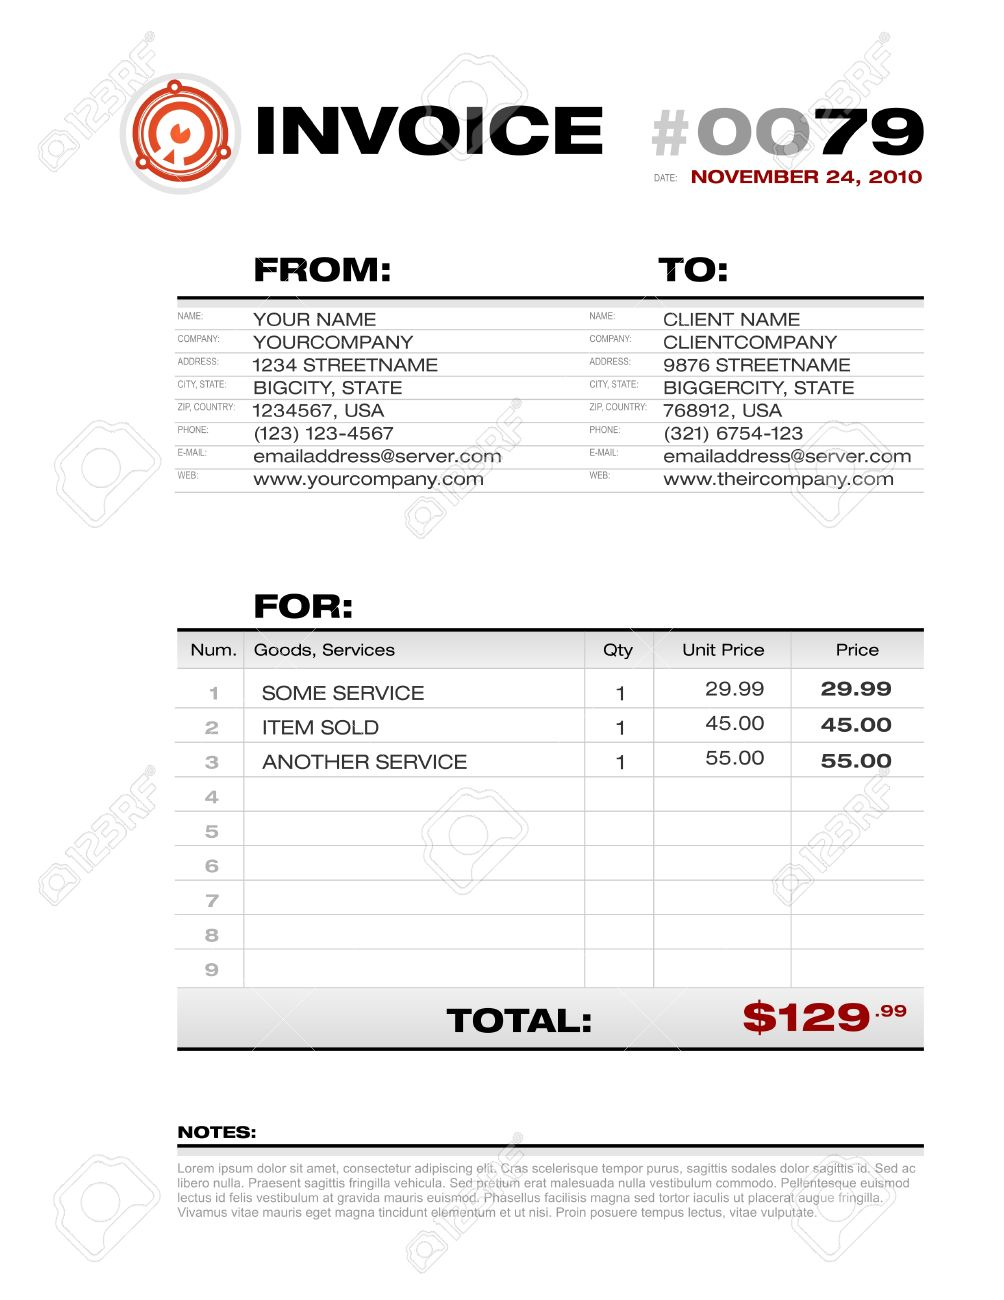 invoice template royalty free cliparts, vectors, and stock, Invoice templates